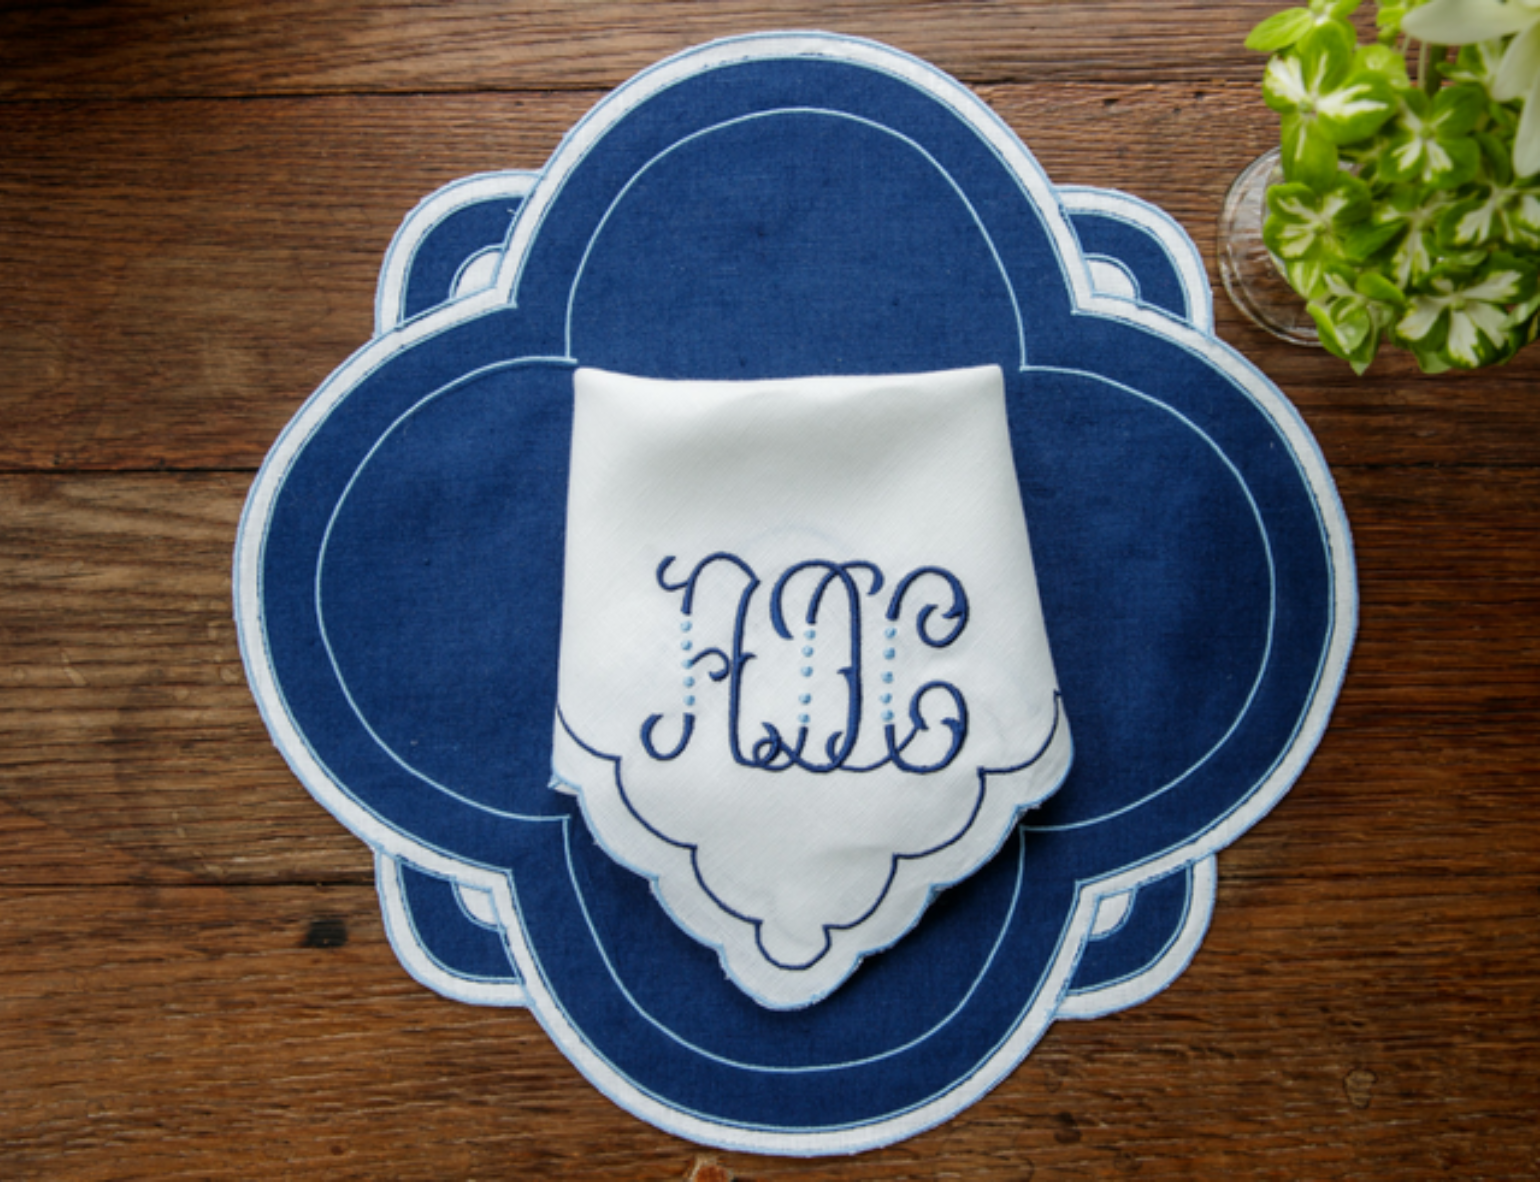 Leiger Embroidery Monogram